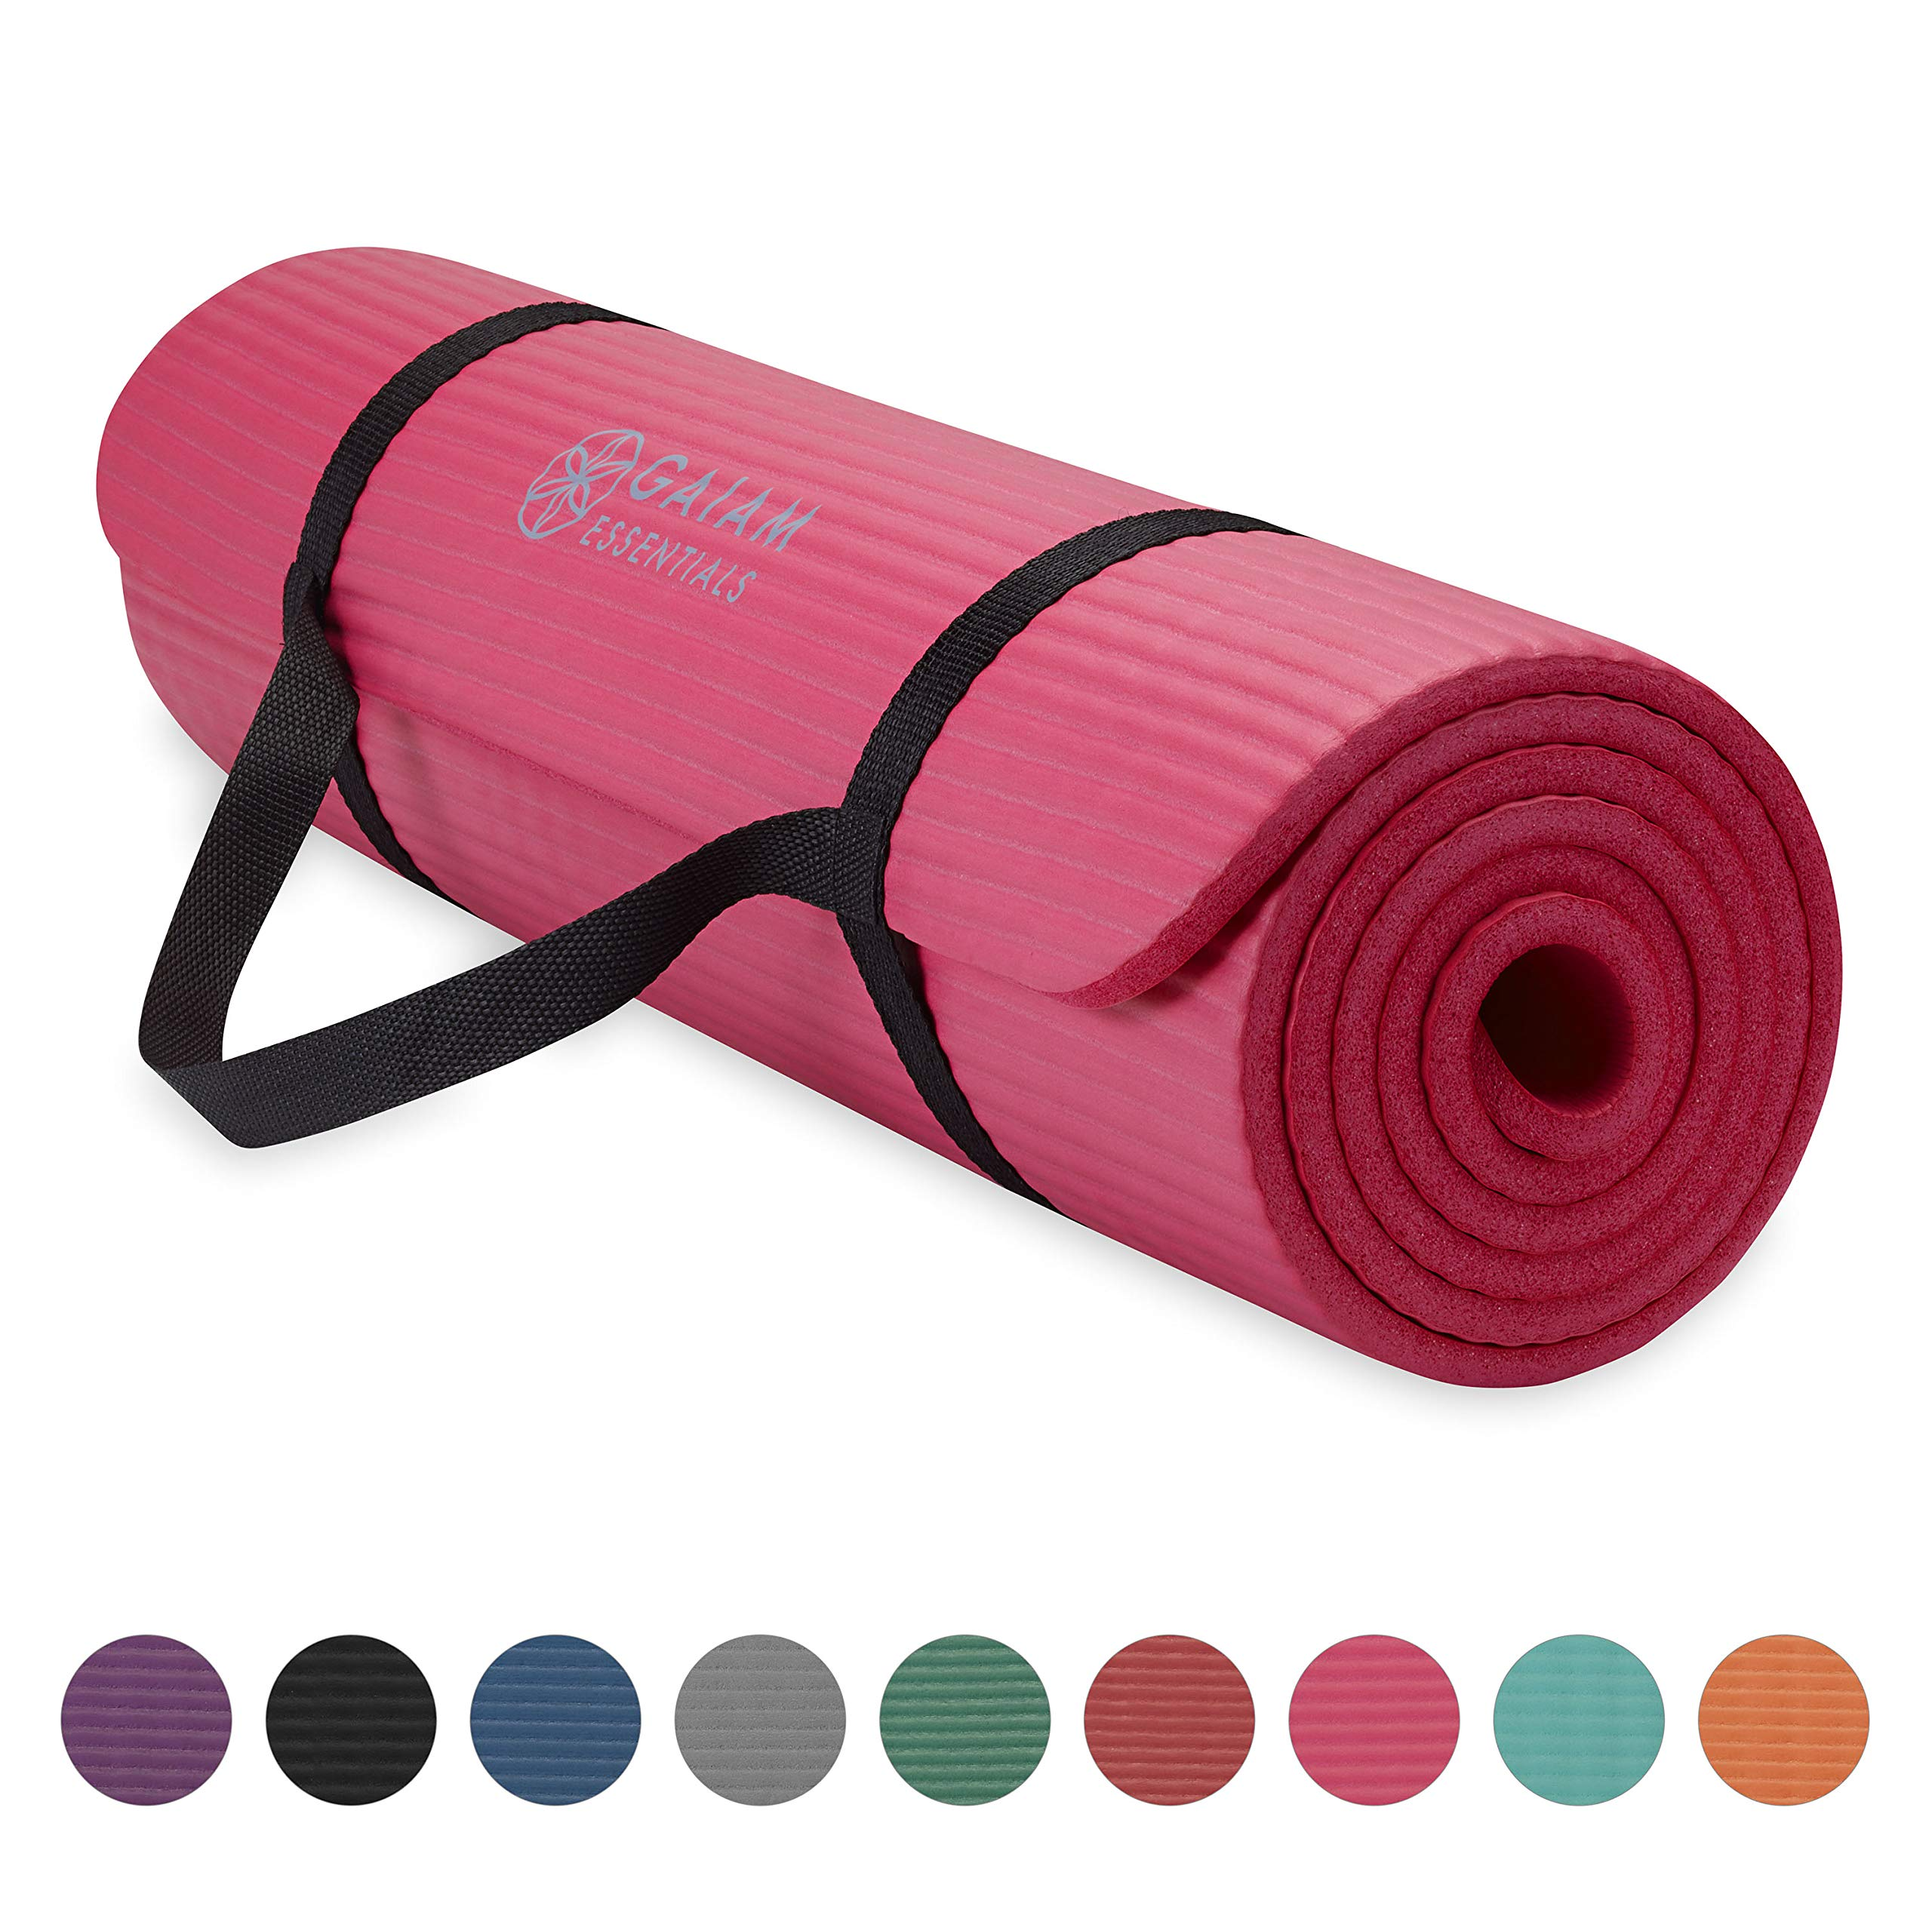 Gaiam Essentials Thick Yoga Mat Fitness & Exercise Mat with Easy-Cinch Yoga Mat Carrier Strap, Pink, 72''L x 24''W x 2/5 Inch Thick